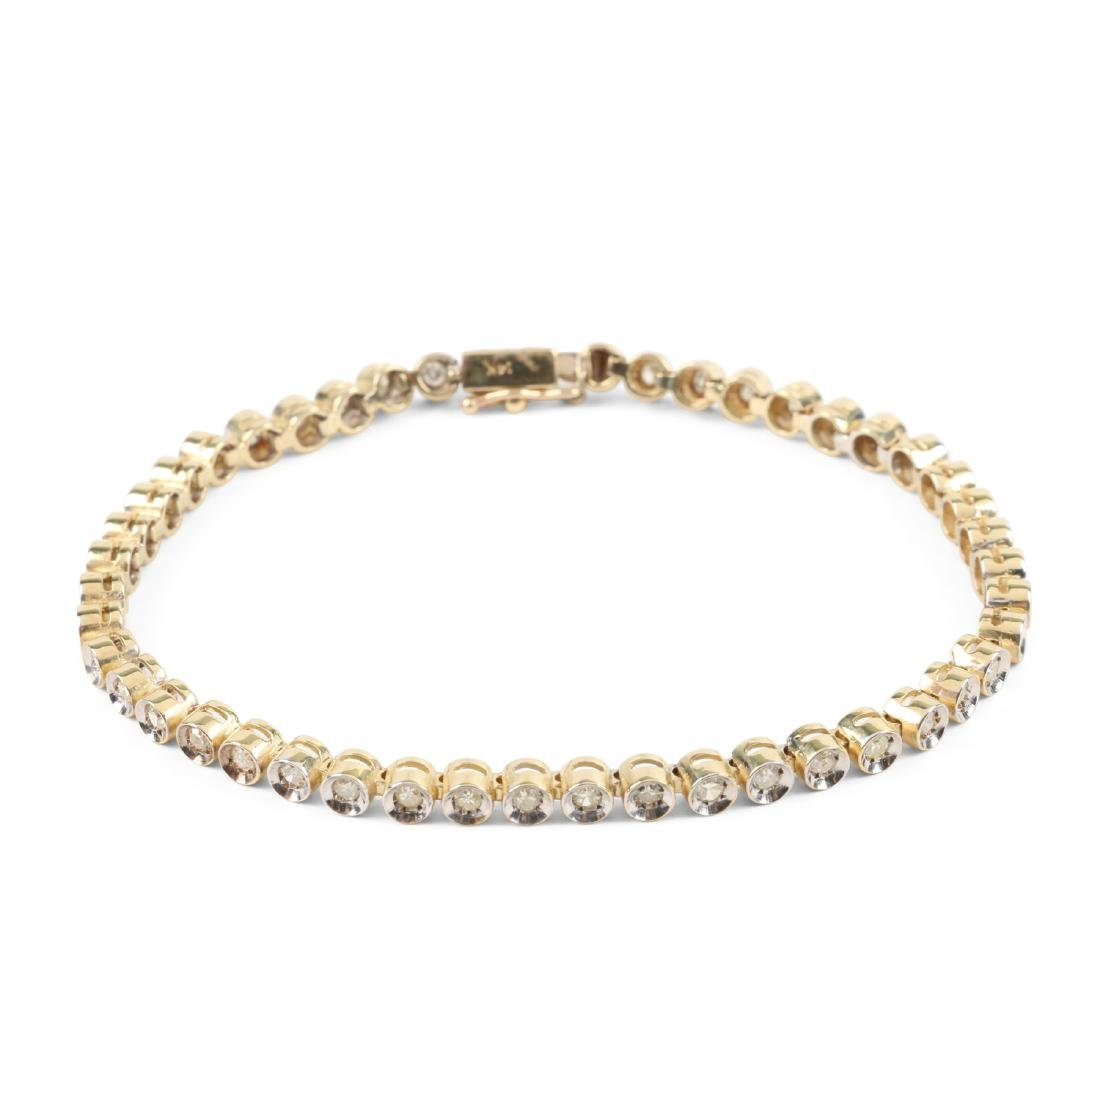 A 14K Gold, Diamond Bracelet